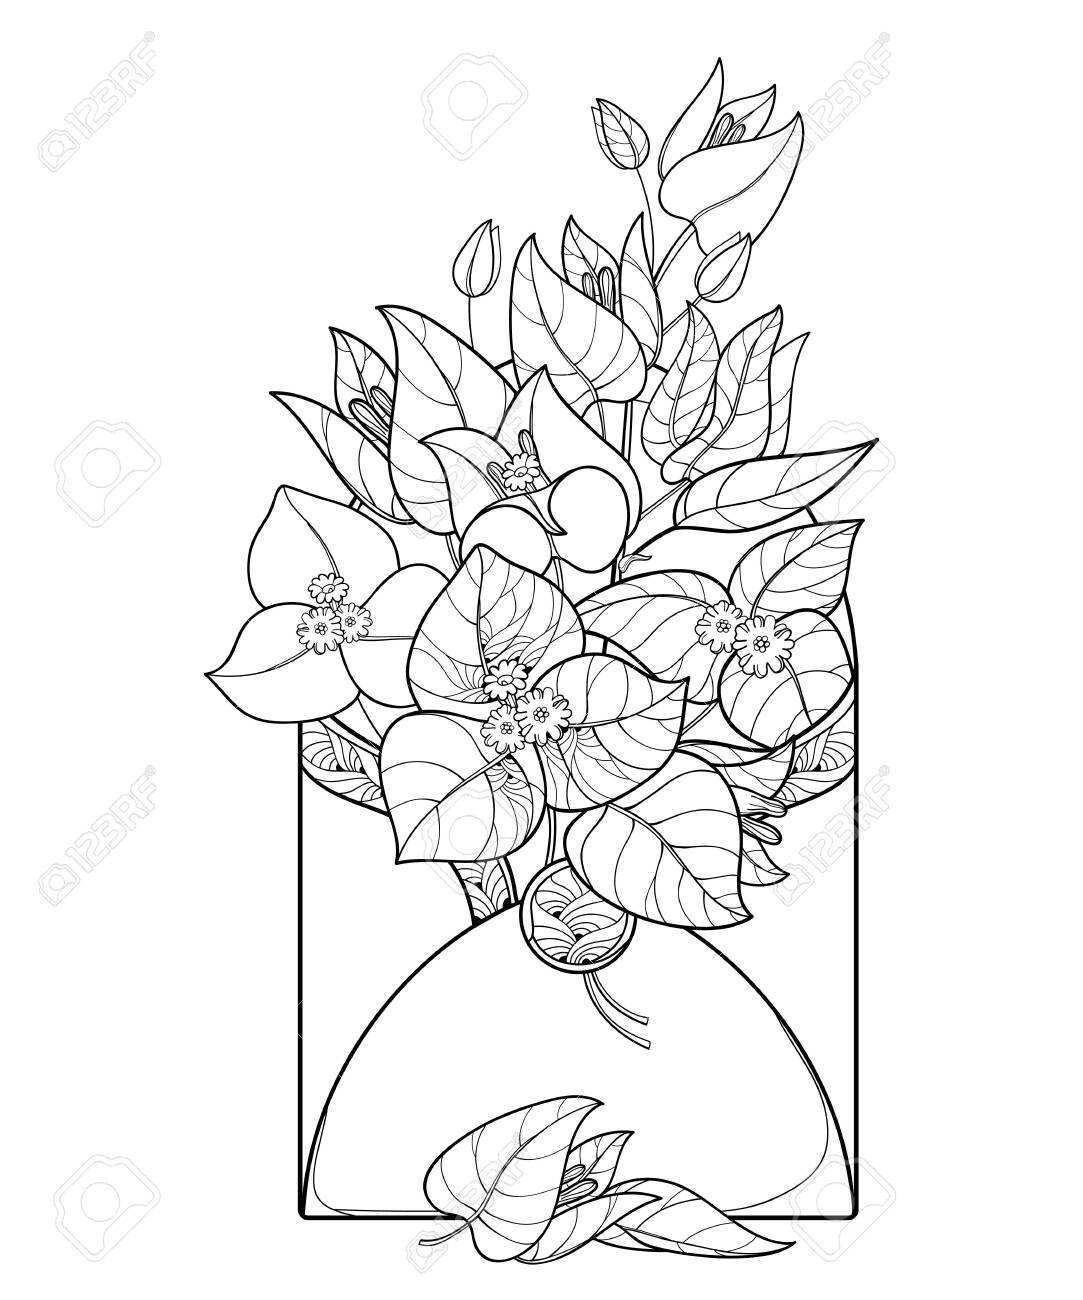 Ornate Bougainvillea For Summer Coloring Book Royalty Free Cliparts Vectors And Stock Illustration Image 120692012